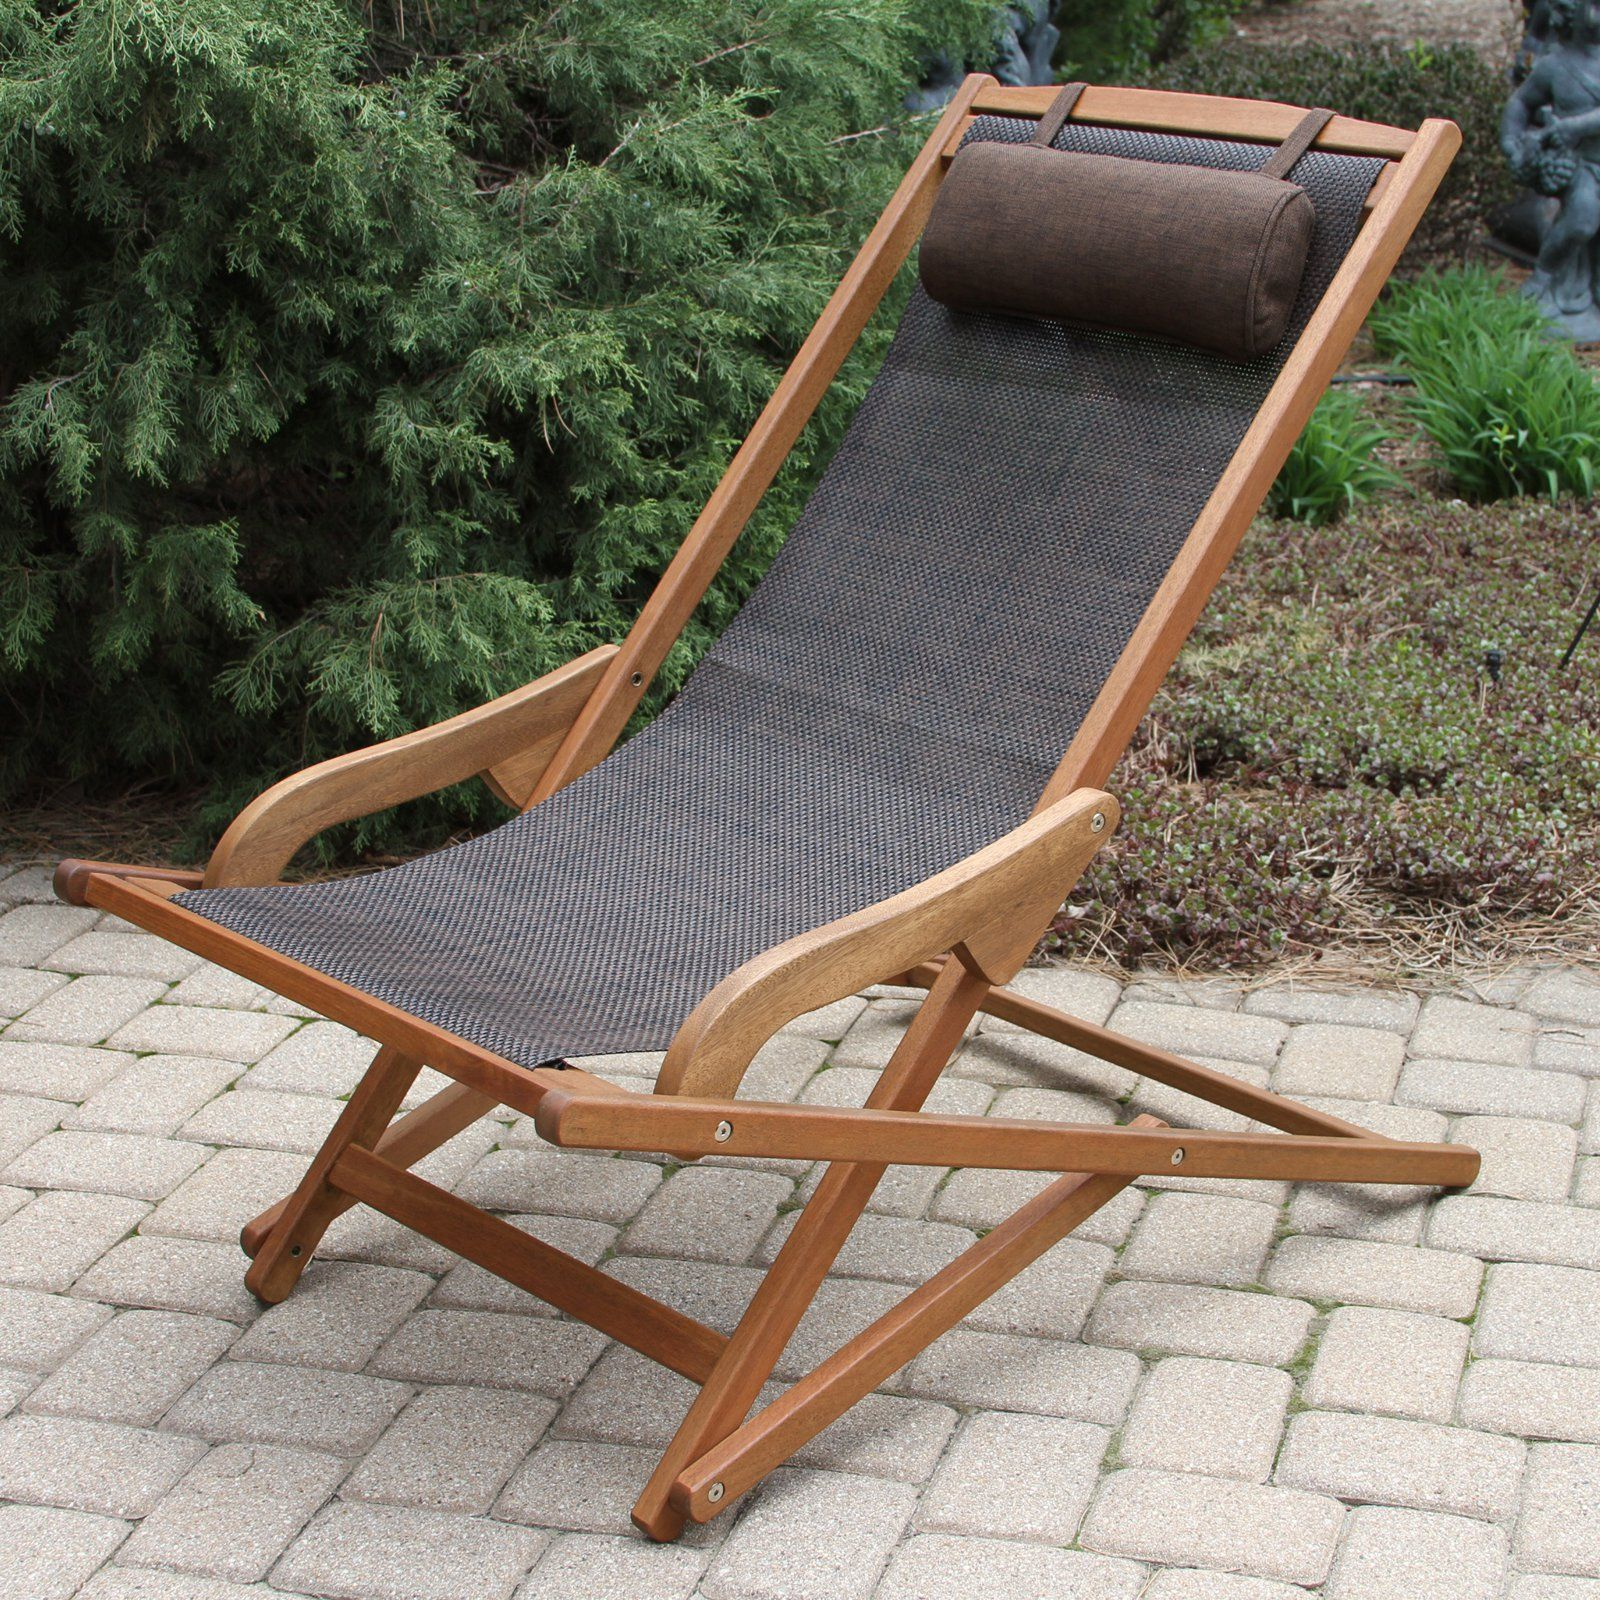 Hammock Chair Rona Vineyard Sling Swing Outdoor Chaise Lounger With Pillow In